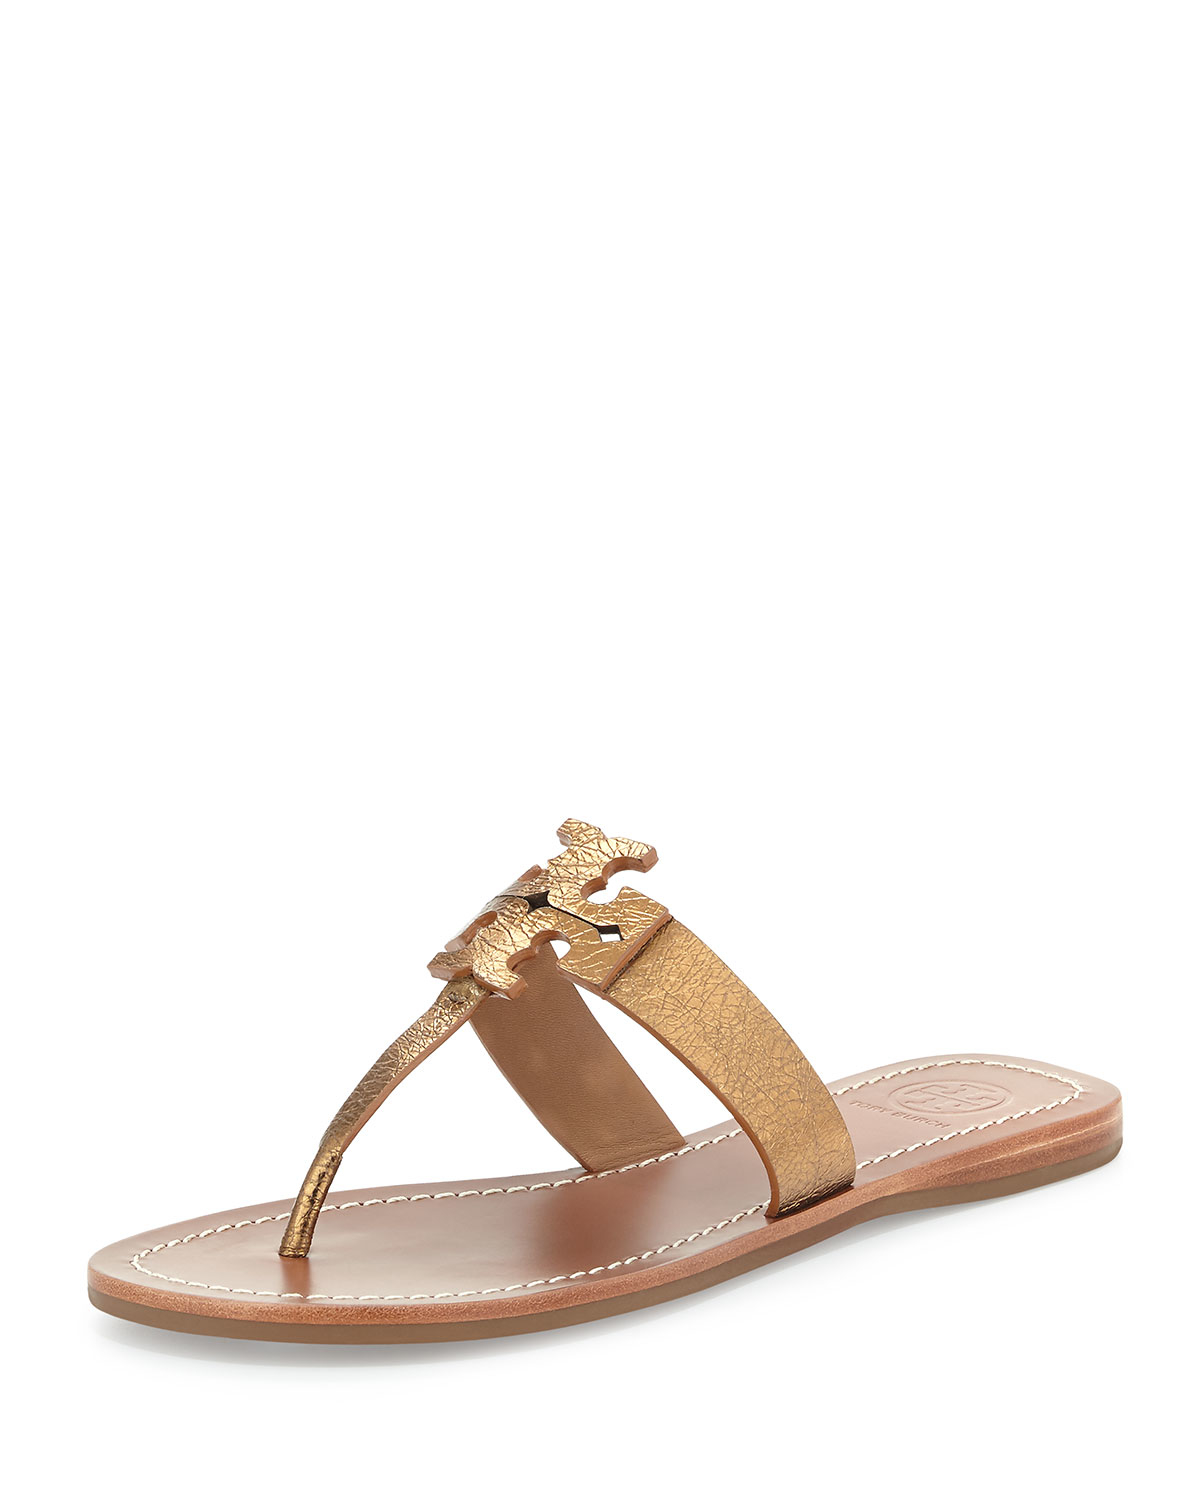 c858a7bdb79 Tory Burch Moore Metallic Leather Sandal in Brown - Lyst